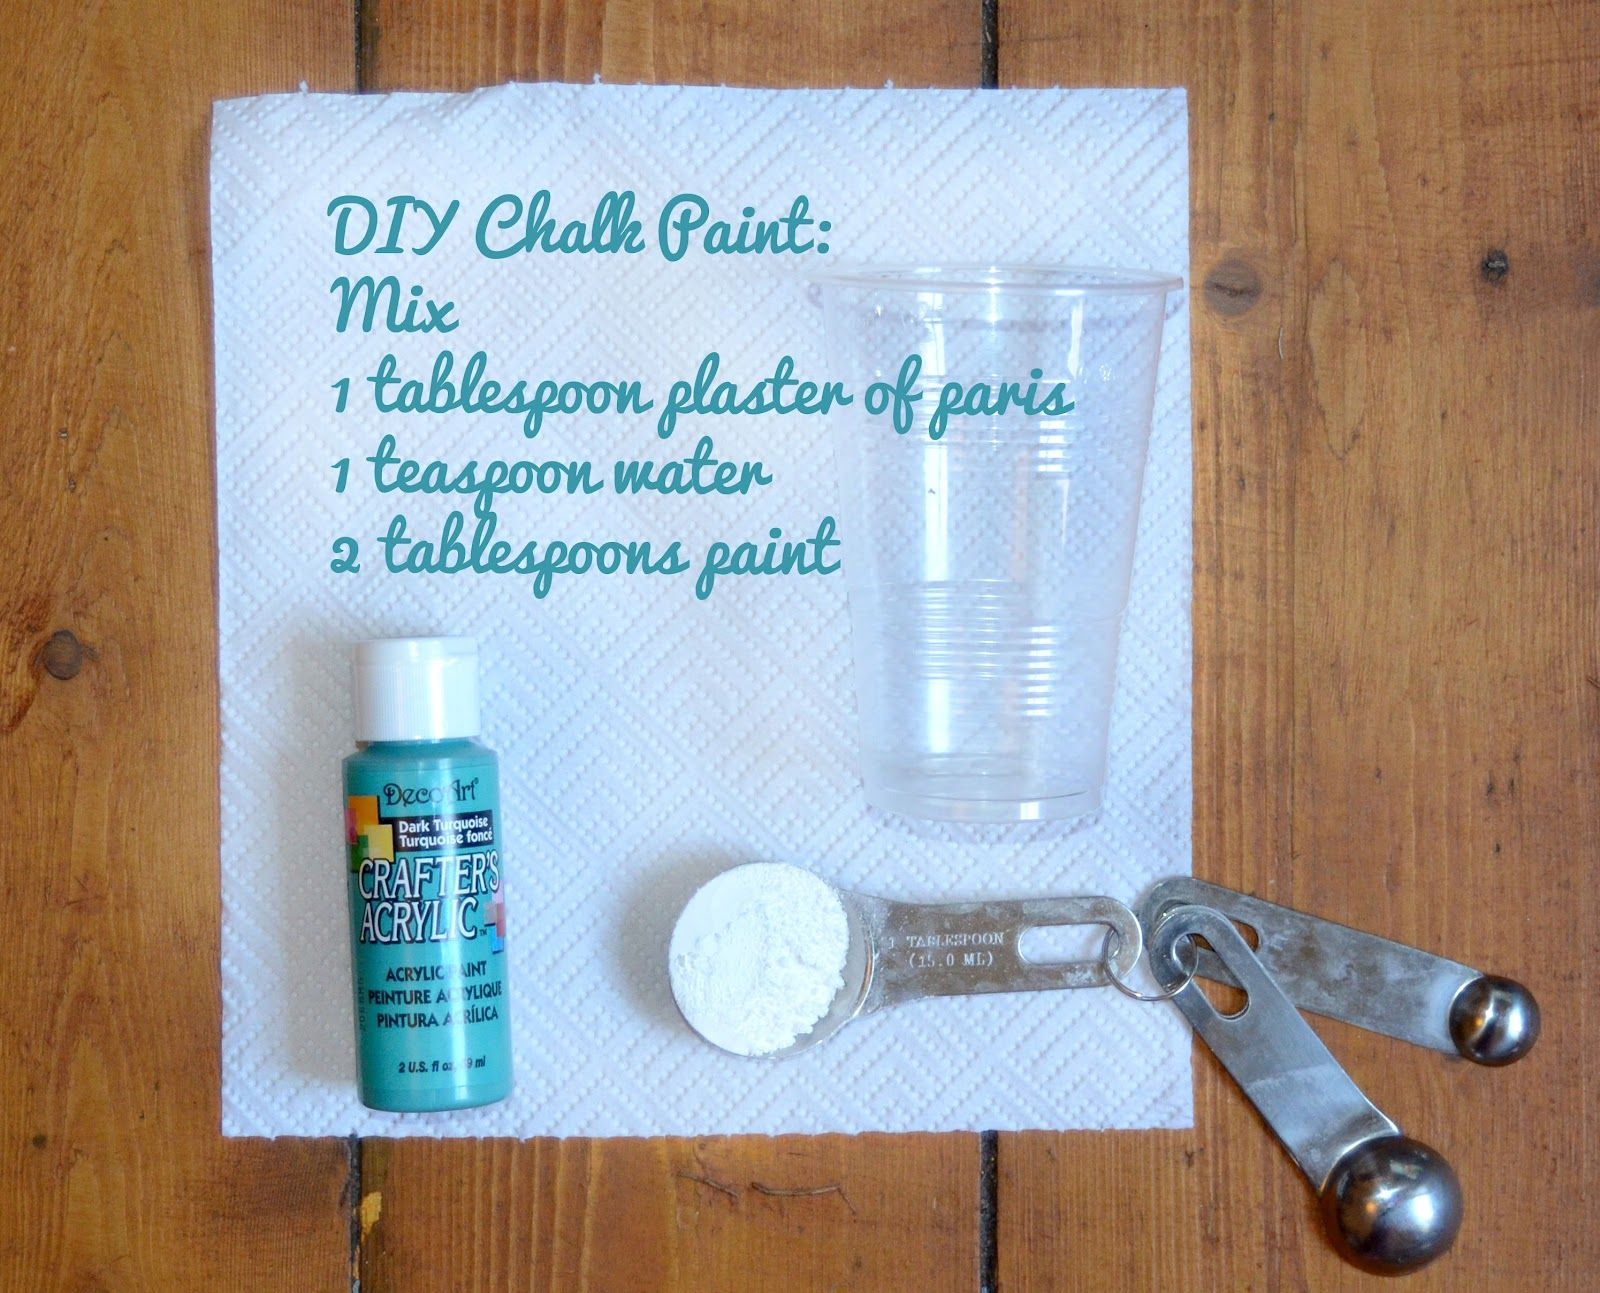 DIY Chalk paint with plaster of paris  can be made in ANY color DIY Chalk paint with plaster of paris  can be made in ANY color  . Diy Home Painting Ideas. Home Design Ideas